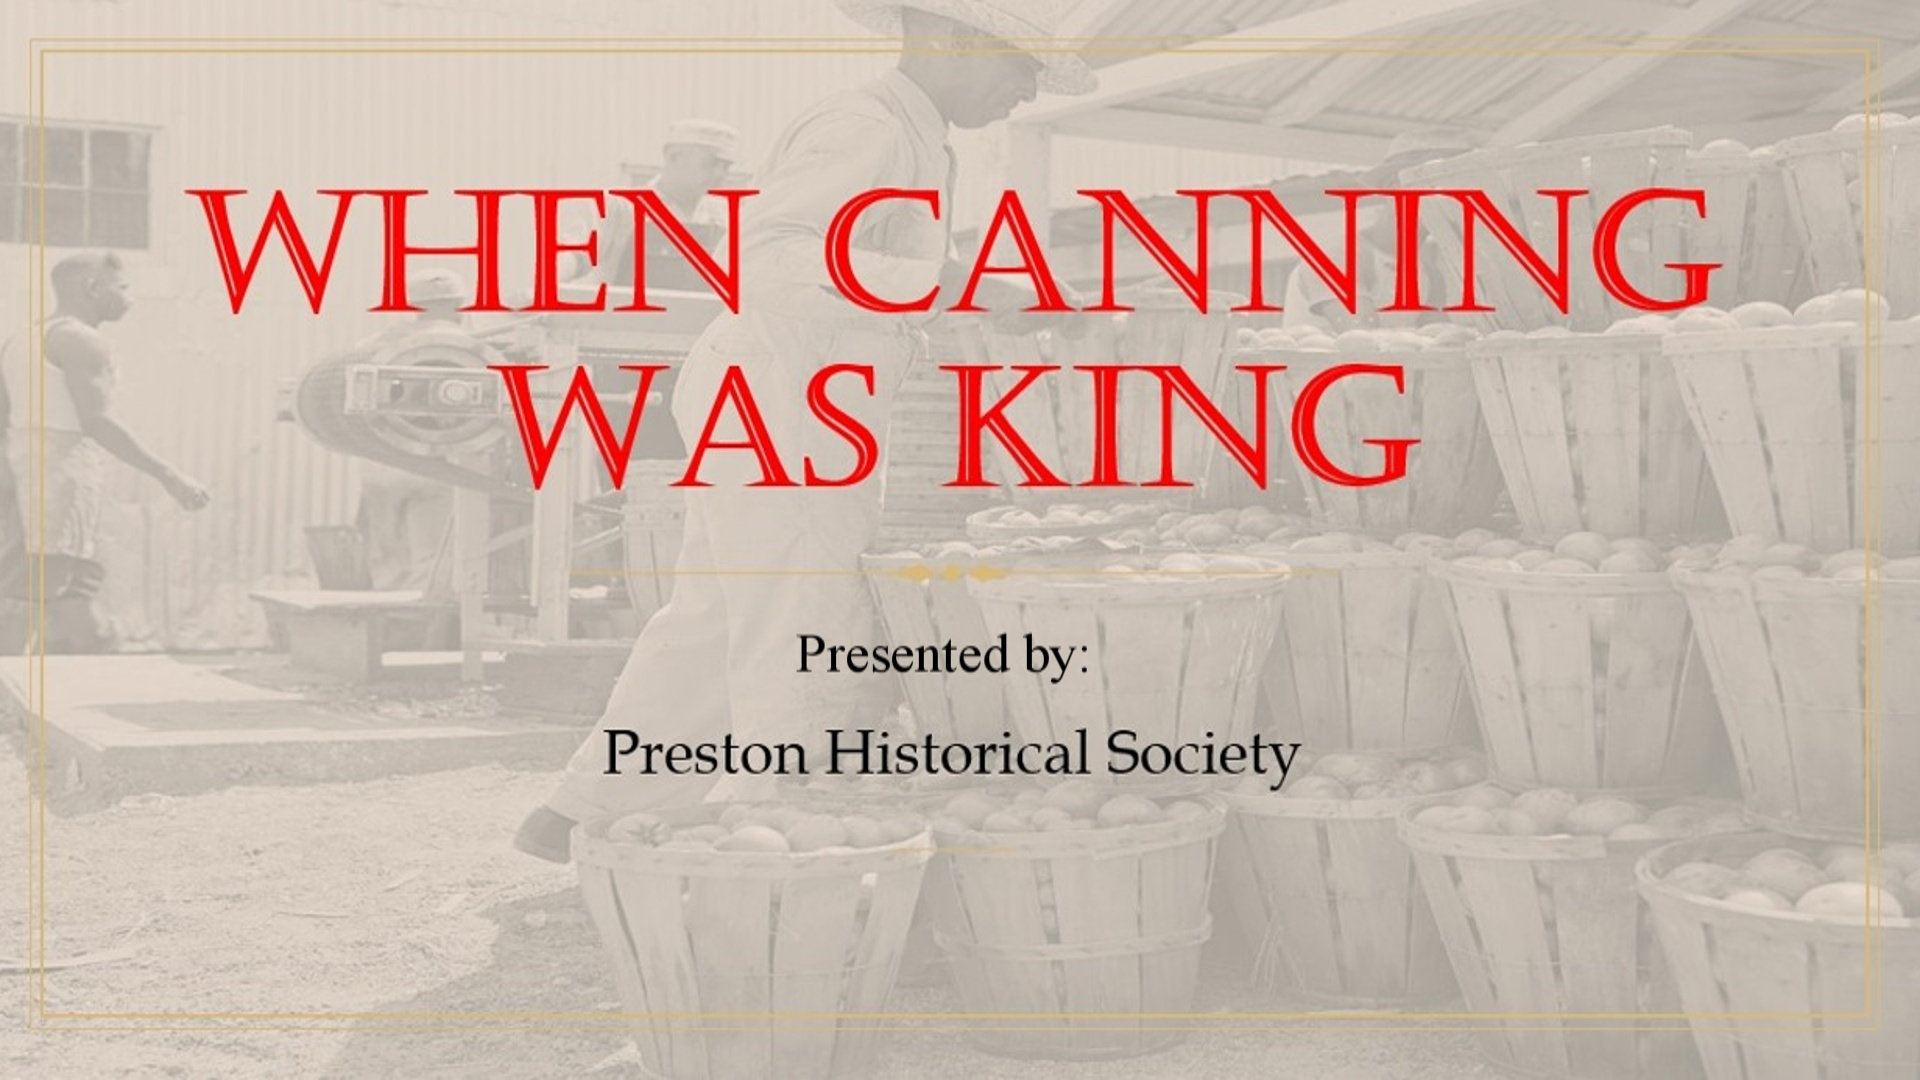 When Canning Was King: A Documentary by the Preston Historical Society